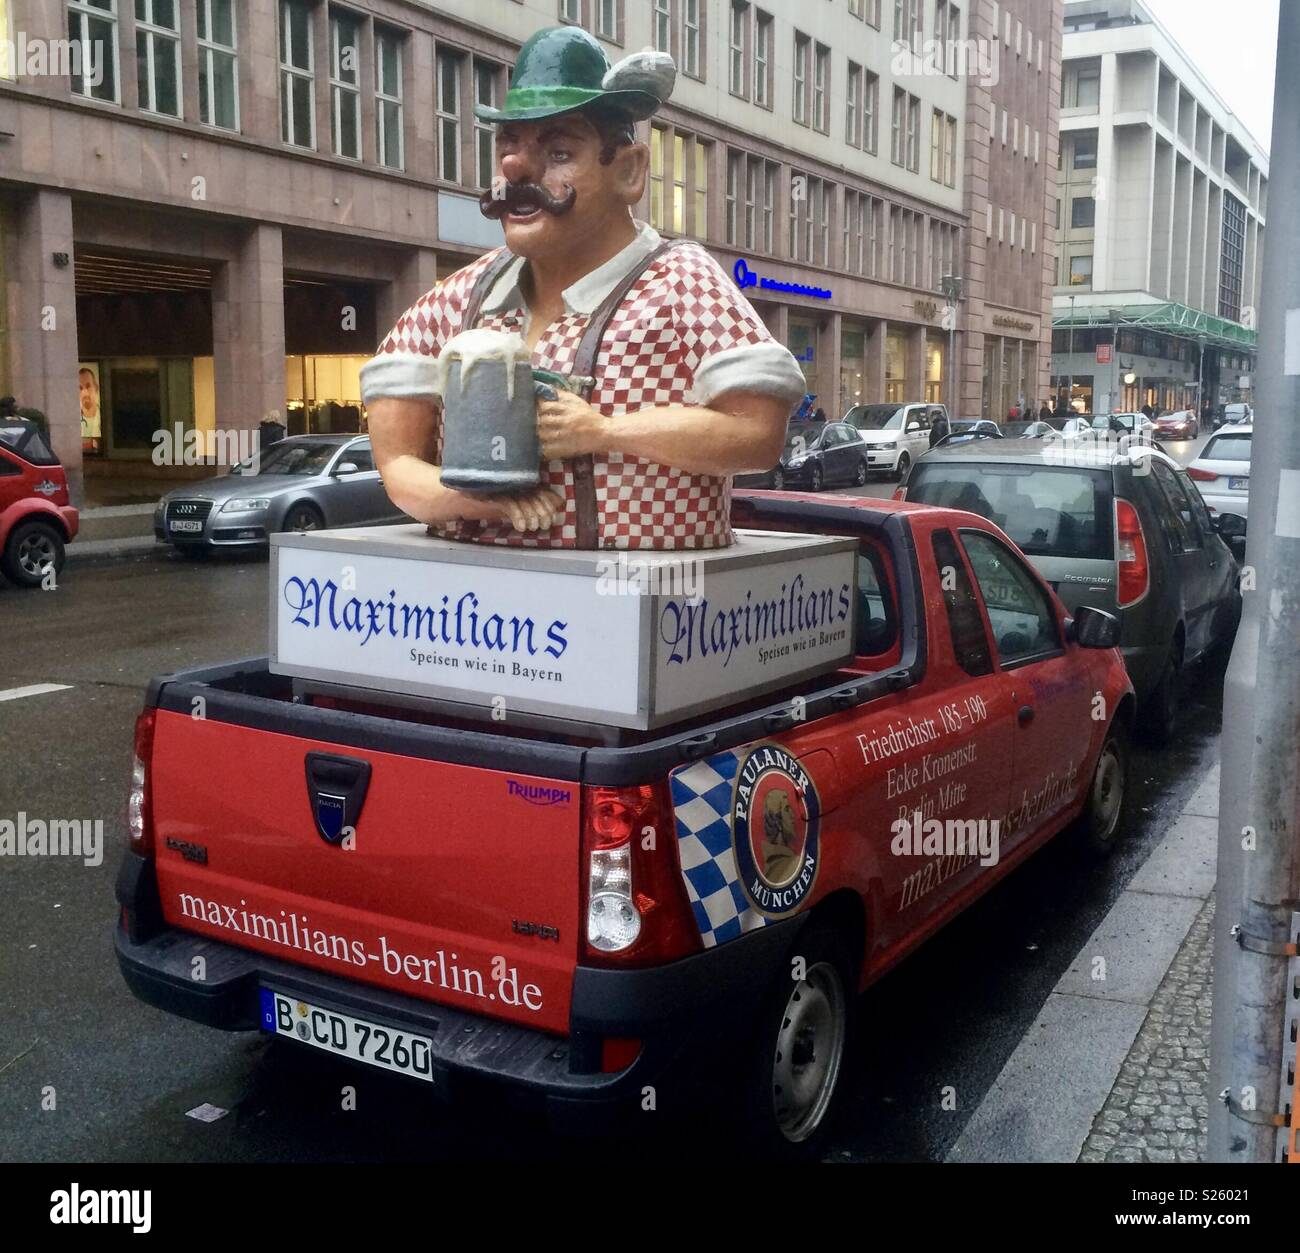 Truck in Berlin - Stock Image